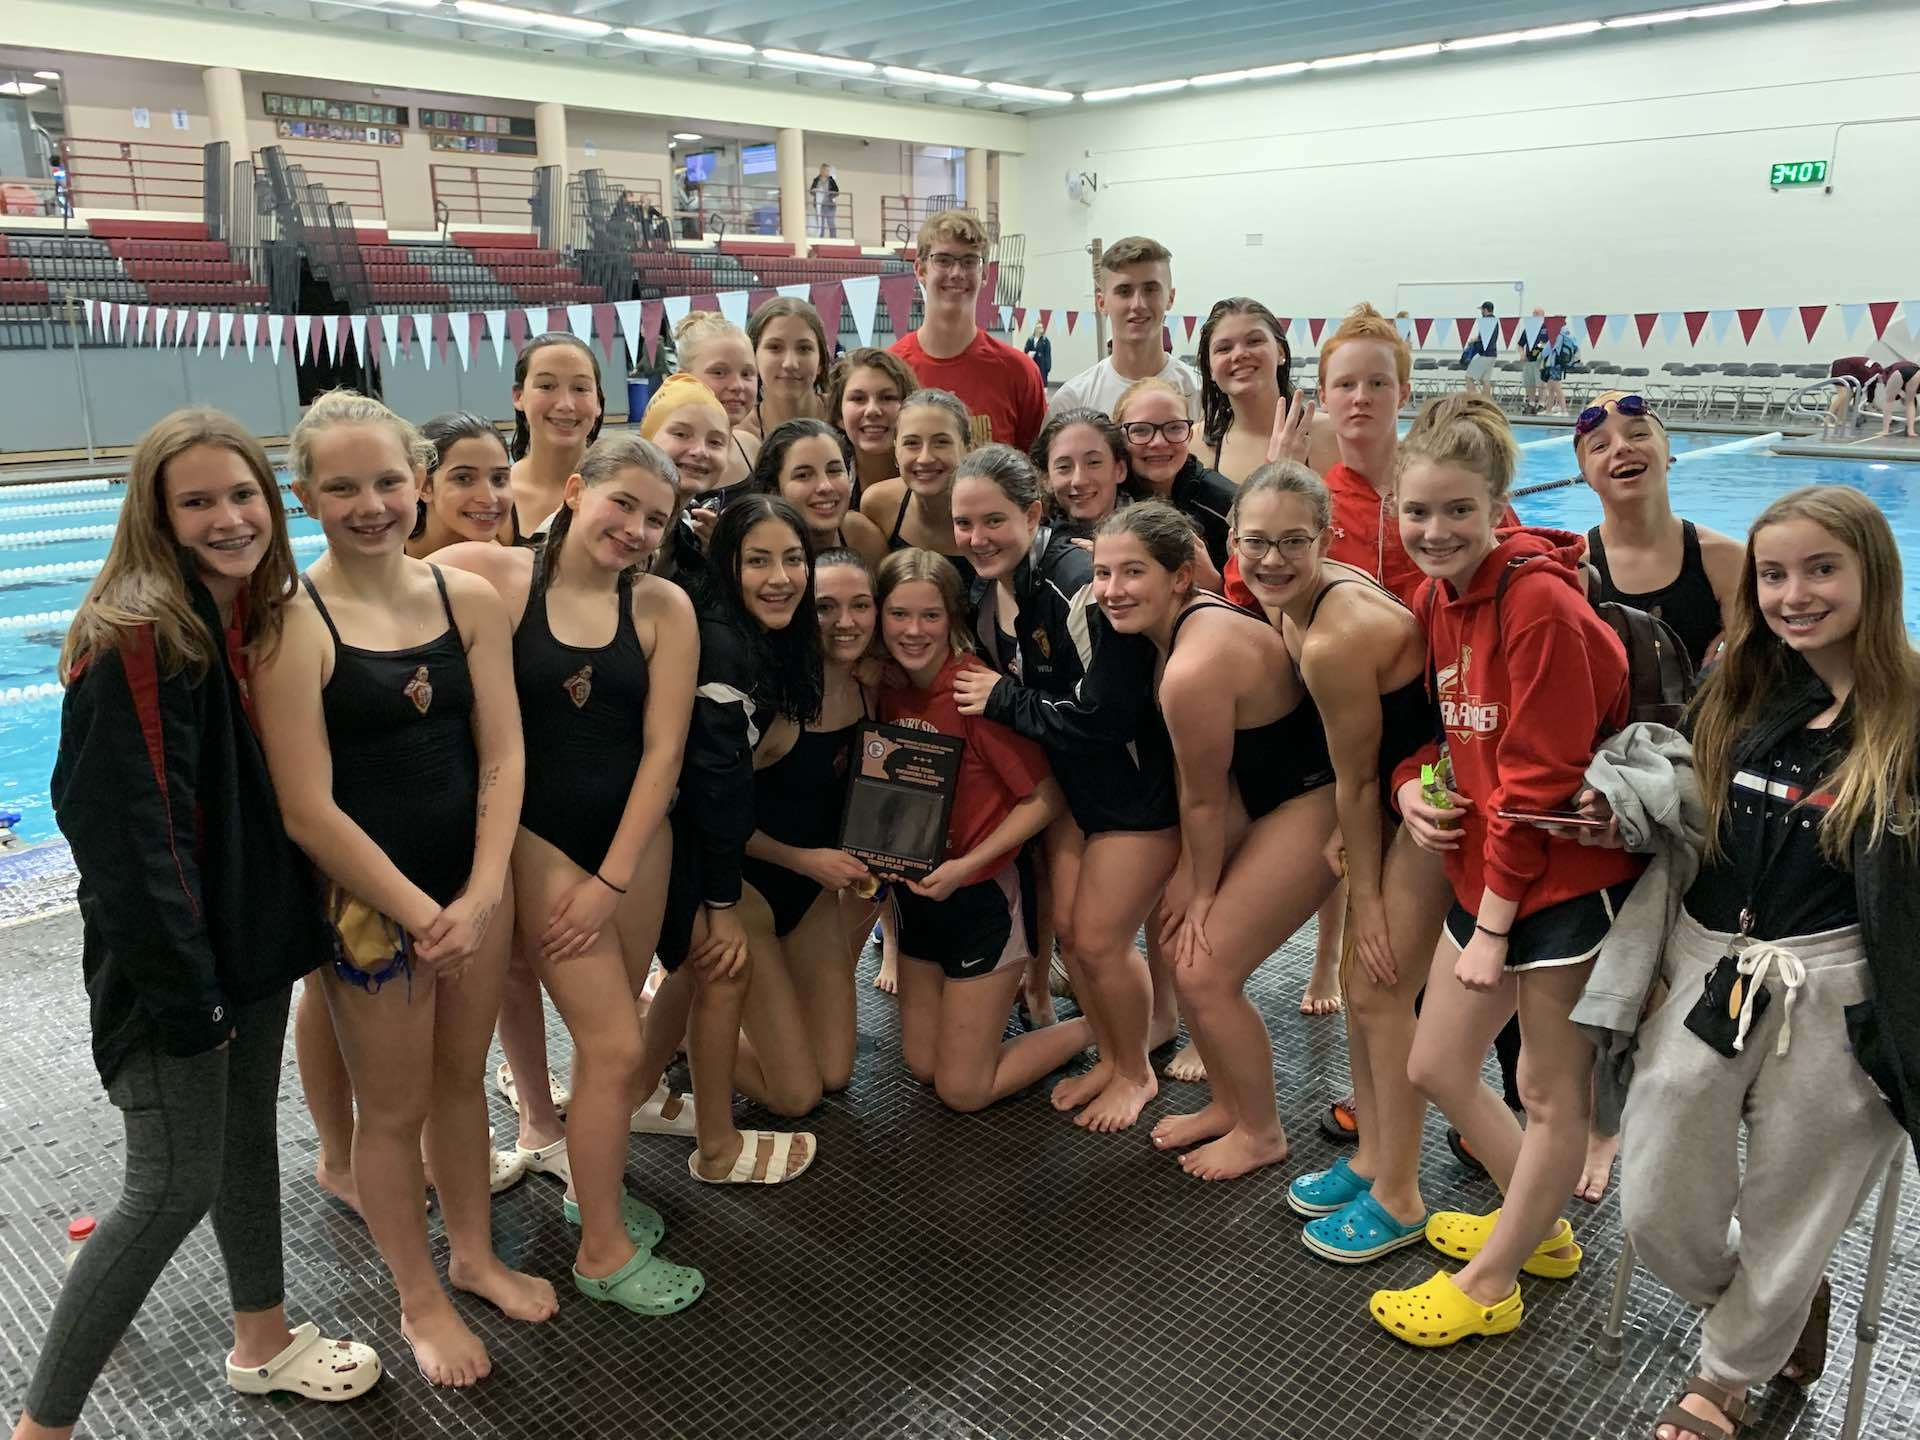 2019 Sibley High School Girls Swim & Dive Portrait of Section 4A True Team - 3rd Place